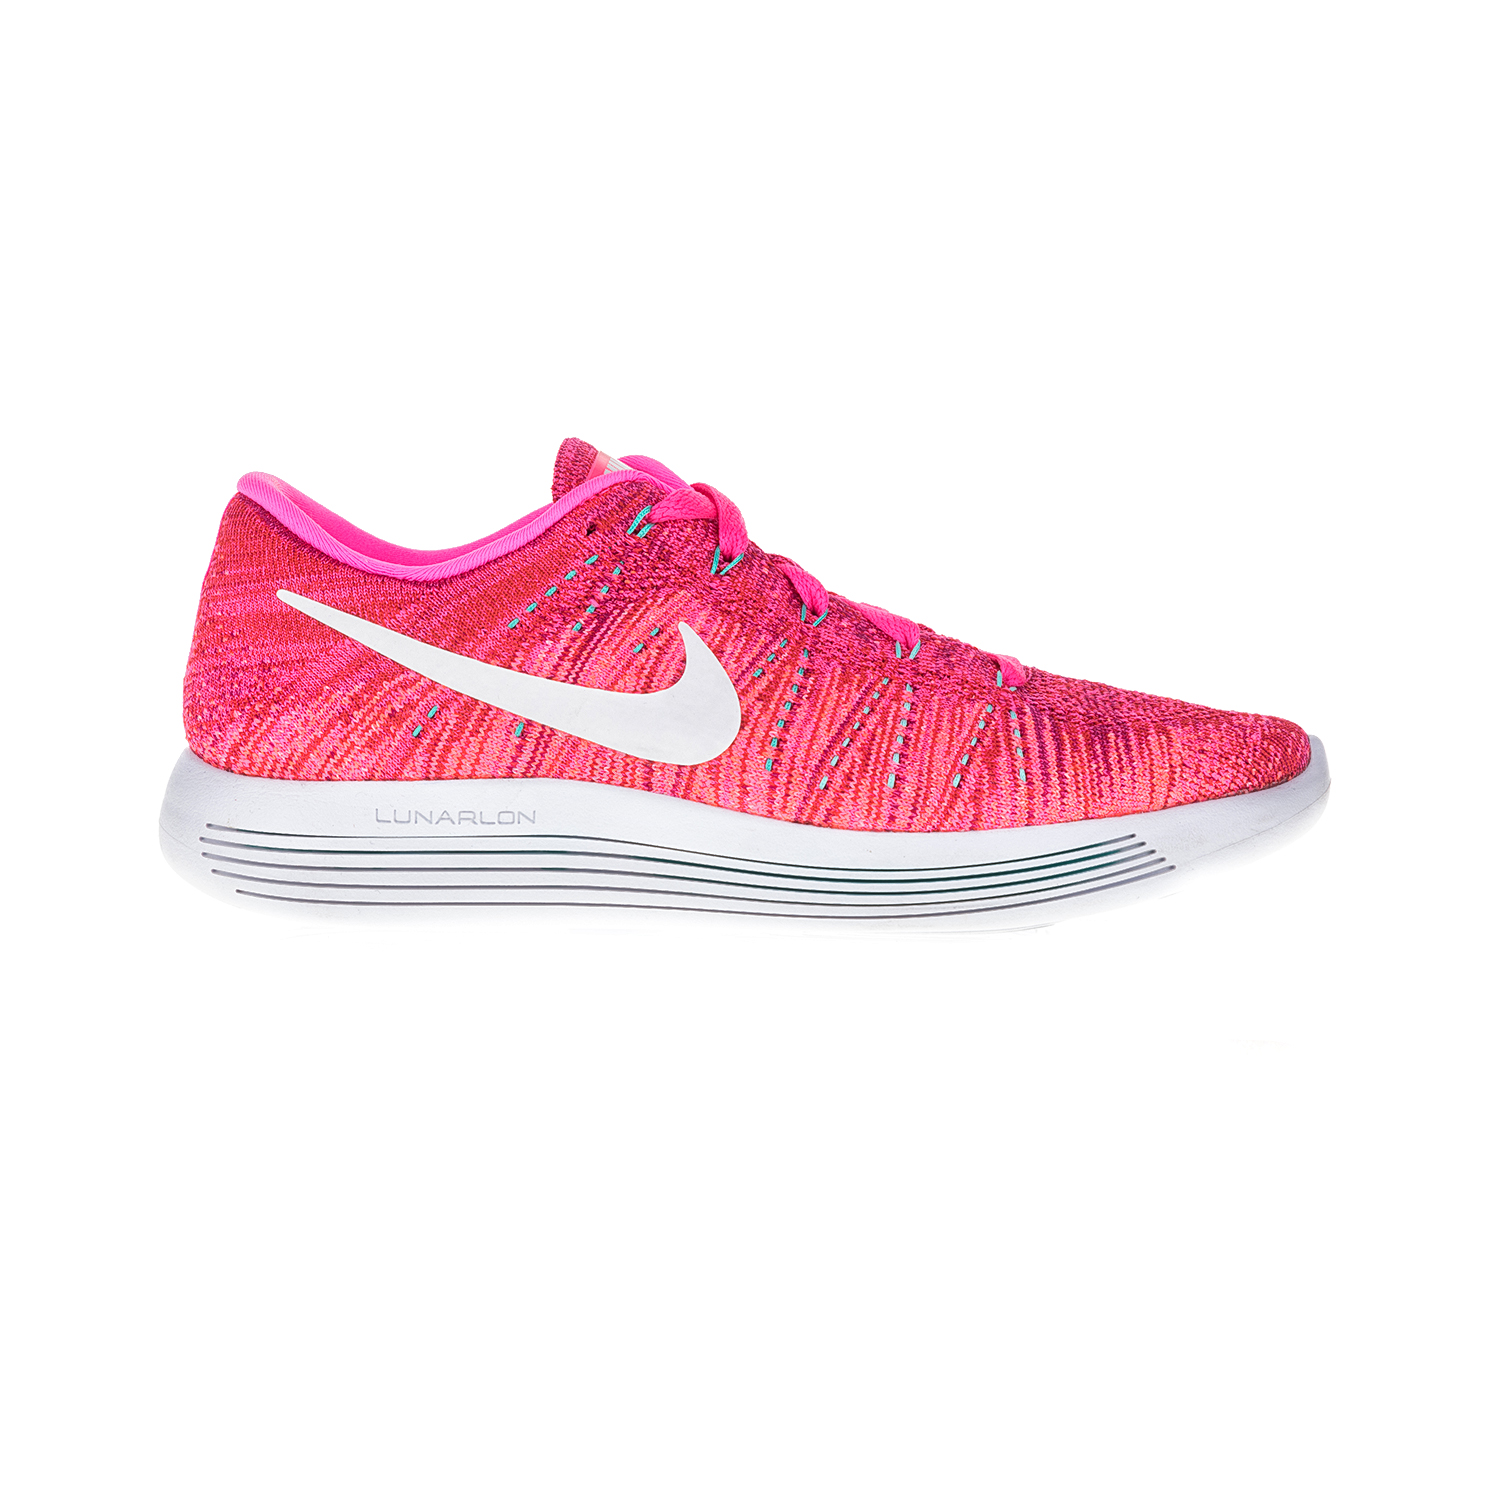 NIKE – Γυναικεία αθλητικά παπούτσια NIKE LUNAREPIC LOW FLYKNIT ροζ-λευκό